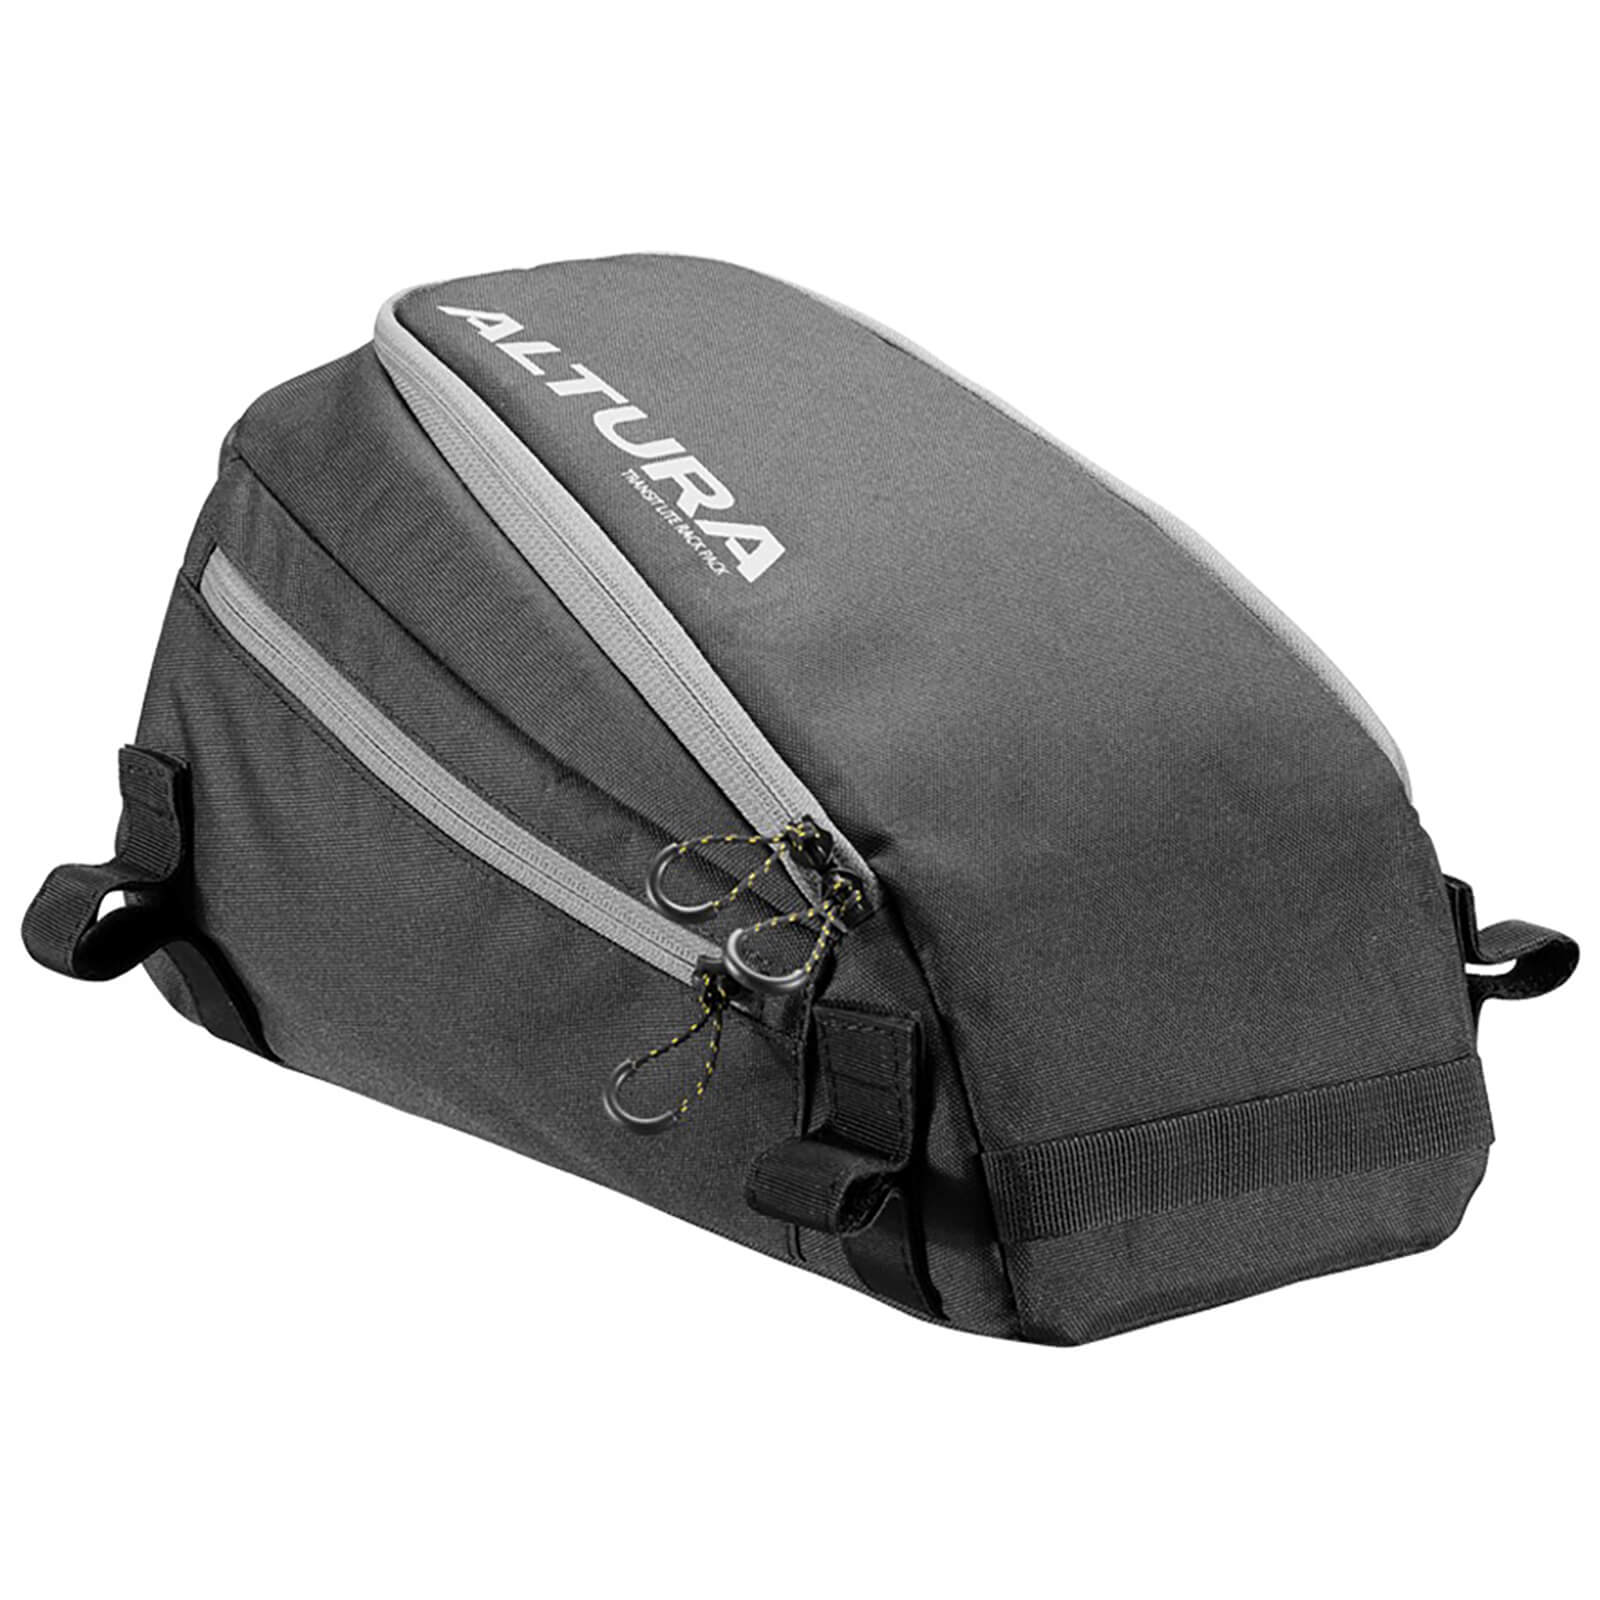 Altura Transit Lite Rack Pack - Black